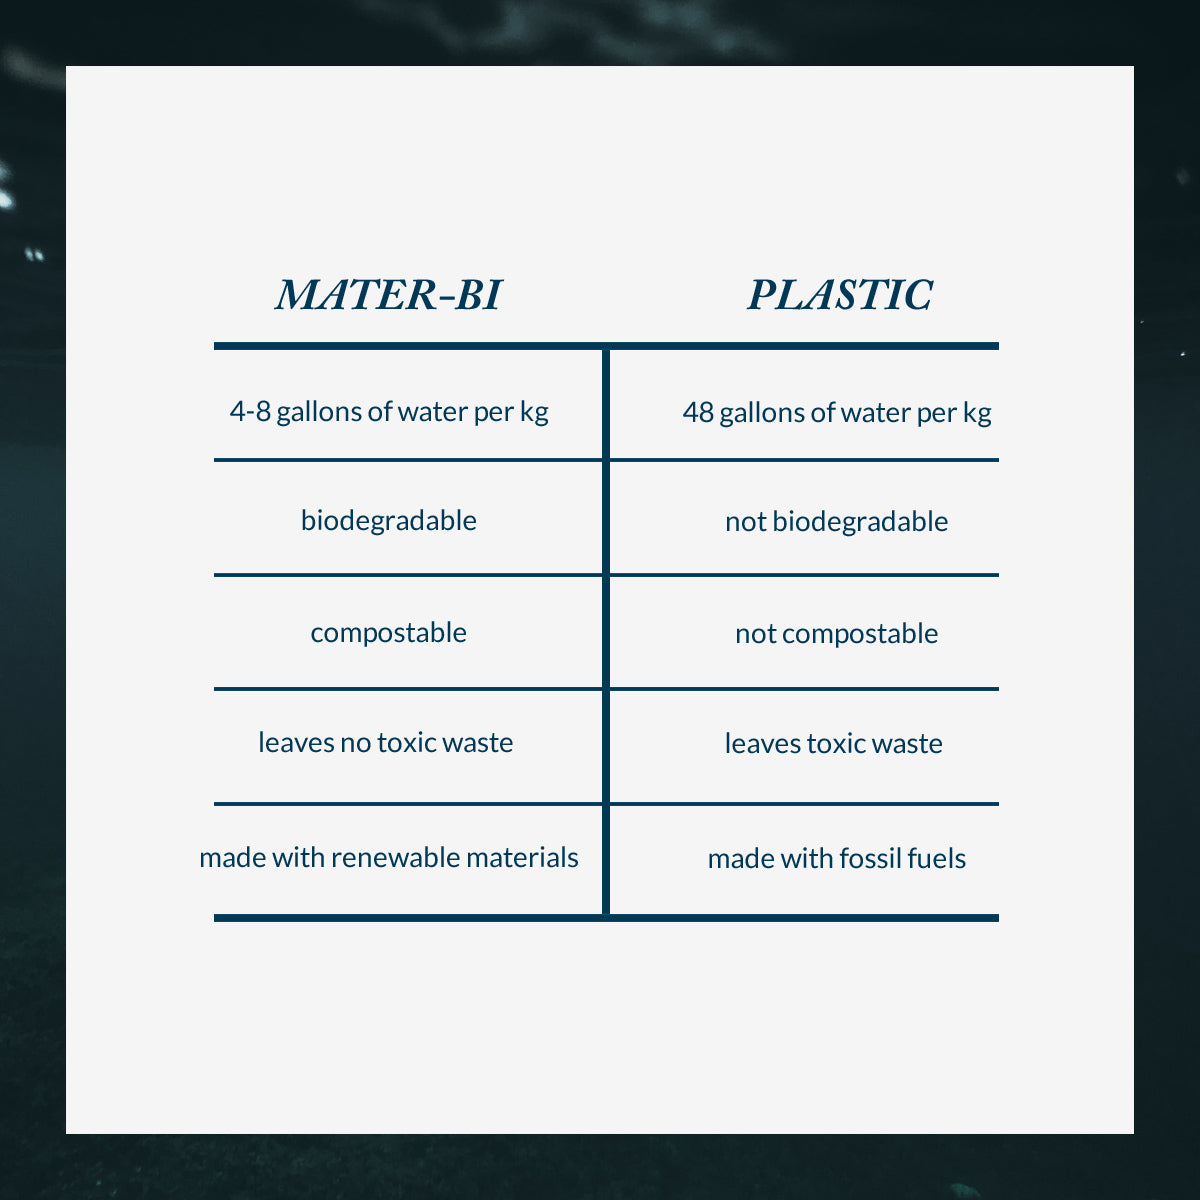 Table showing the difference between Mater-Bi and Plastic